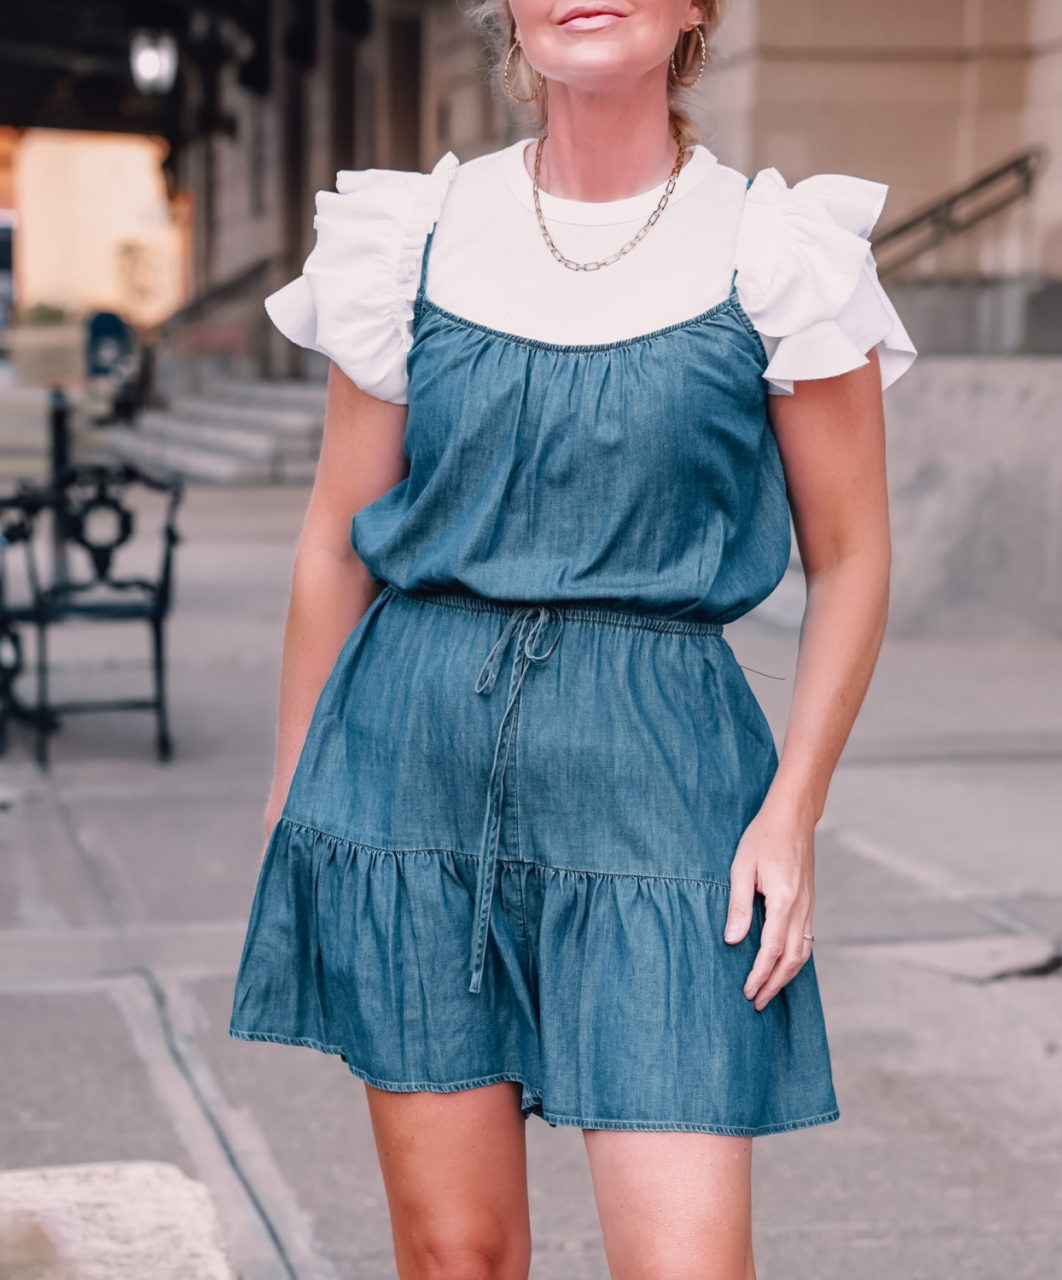 how to wear a romper, how to wear rompers, rompers over 40, three ways to wear a romper, express ruffled romper, express ruffle sleeve white tee, see by chloe wedges, express paperclip necklace, express jewelry, express sunglasses, affordable romper